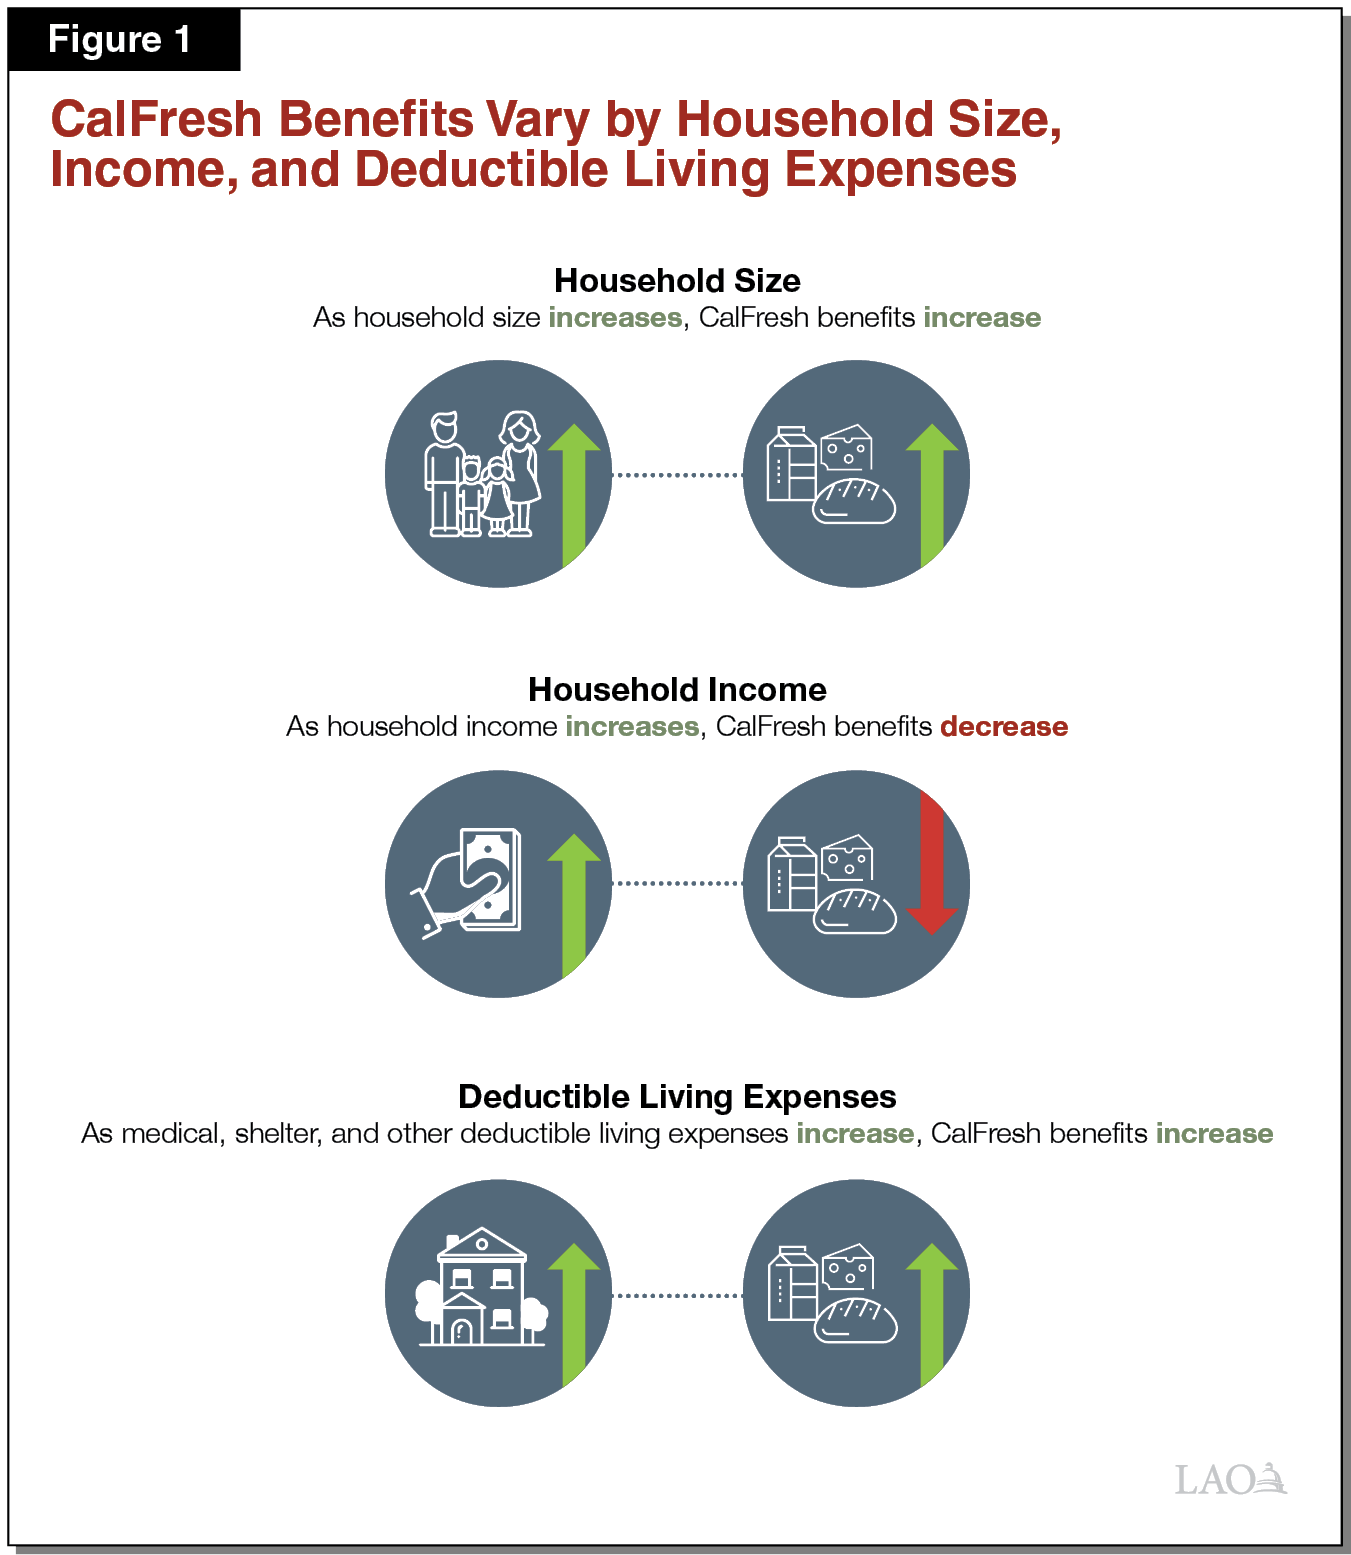 CalFresh Benefits Vary by Household Size, Income, and Deductible Living Expenses